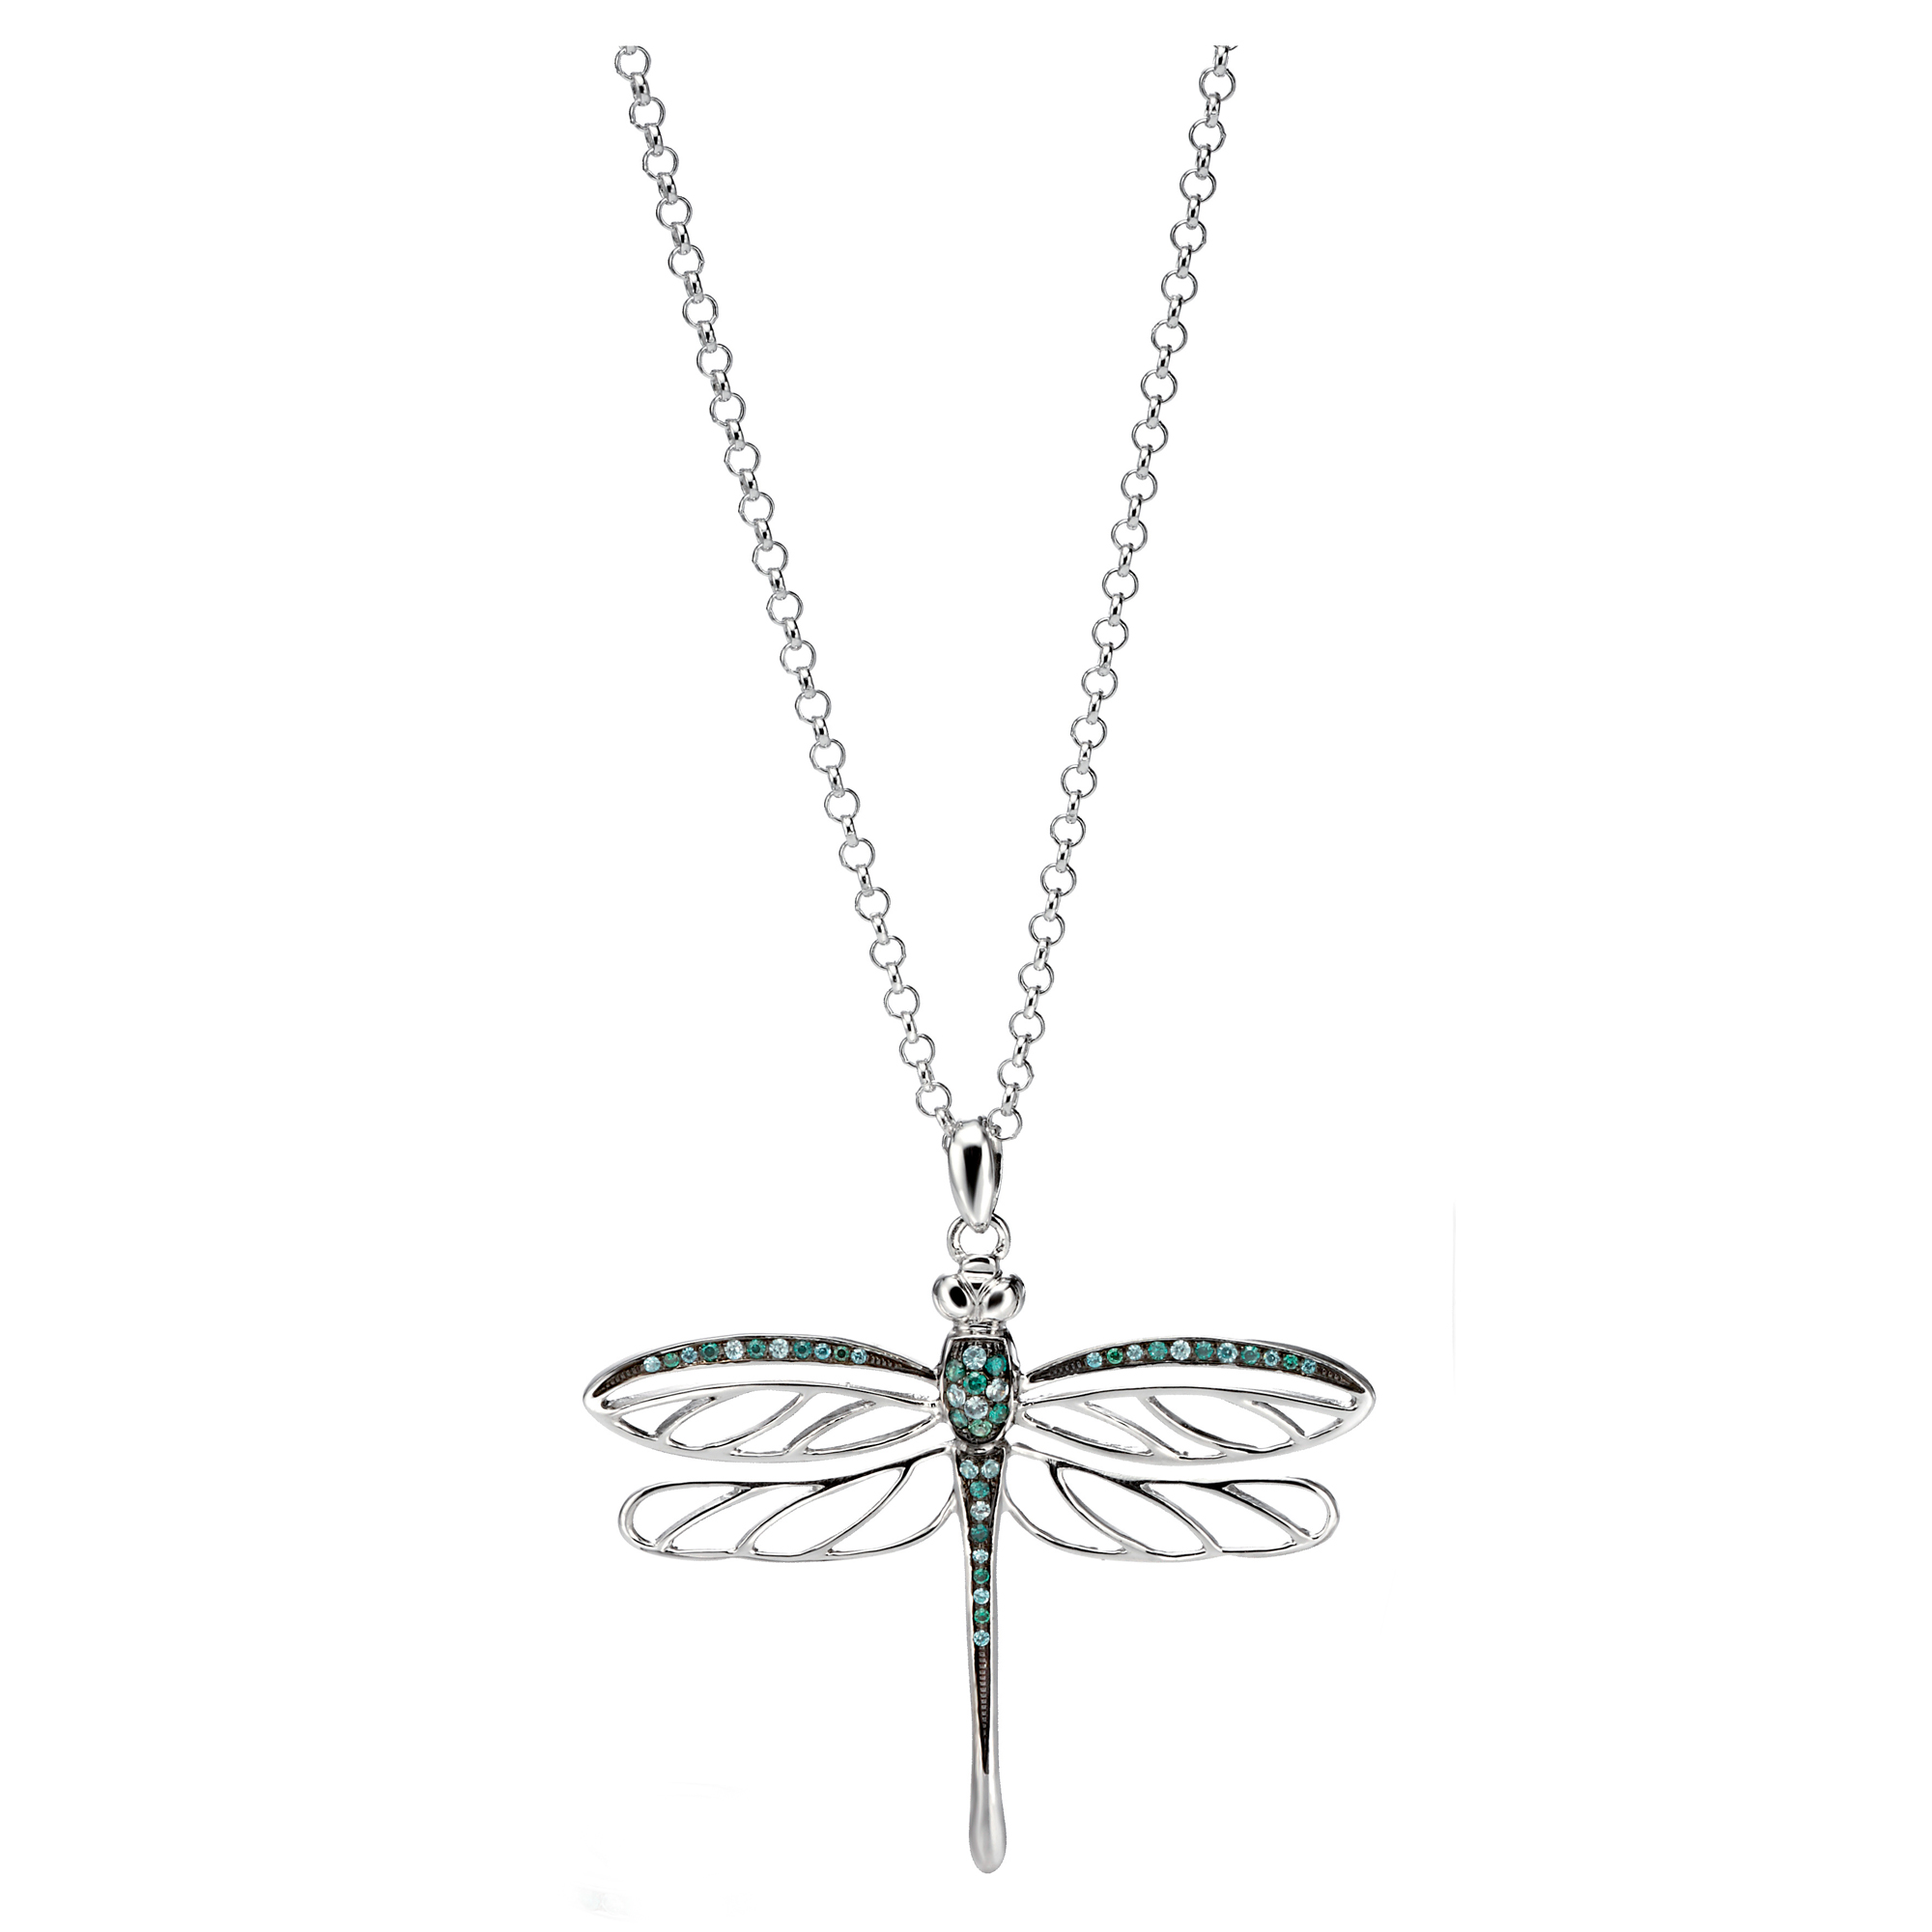 polished new from aitkens nb in products made pewter dragonfly fredericton drap pendant necklace